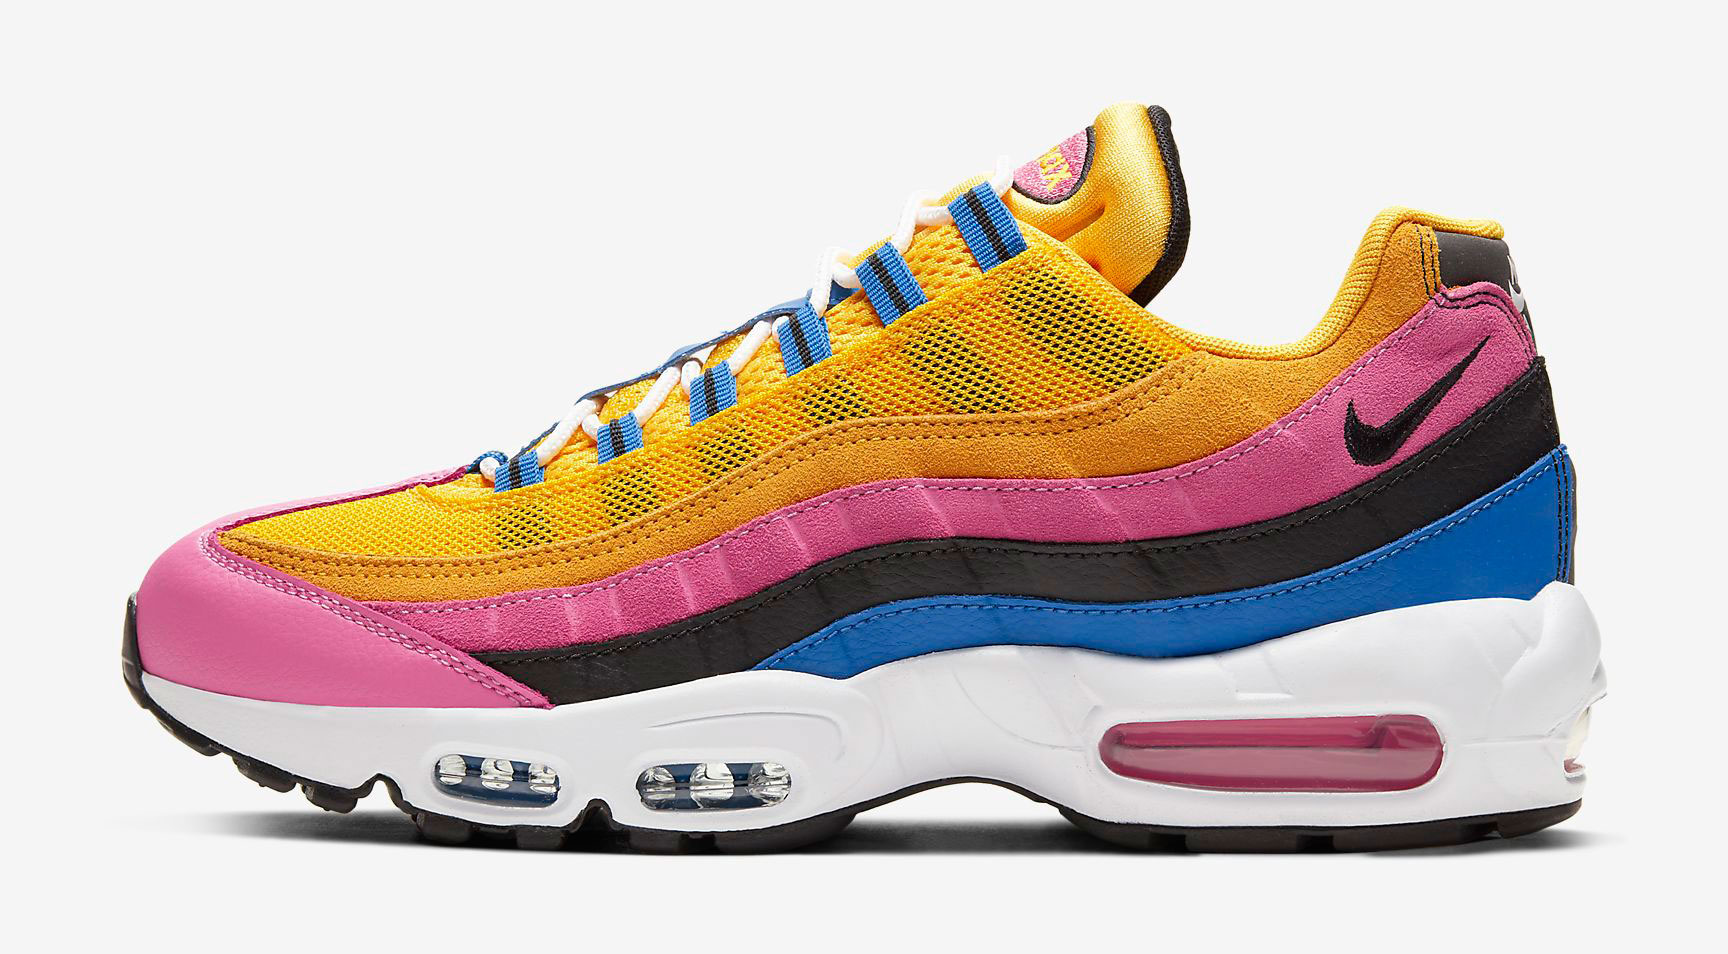 nike-air-max-95-university-gold-pinksicle-release-date